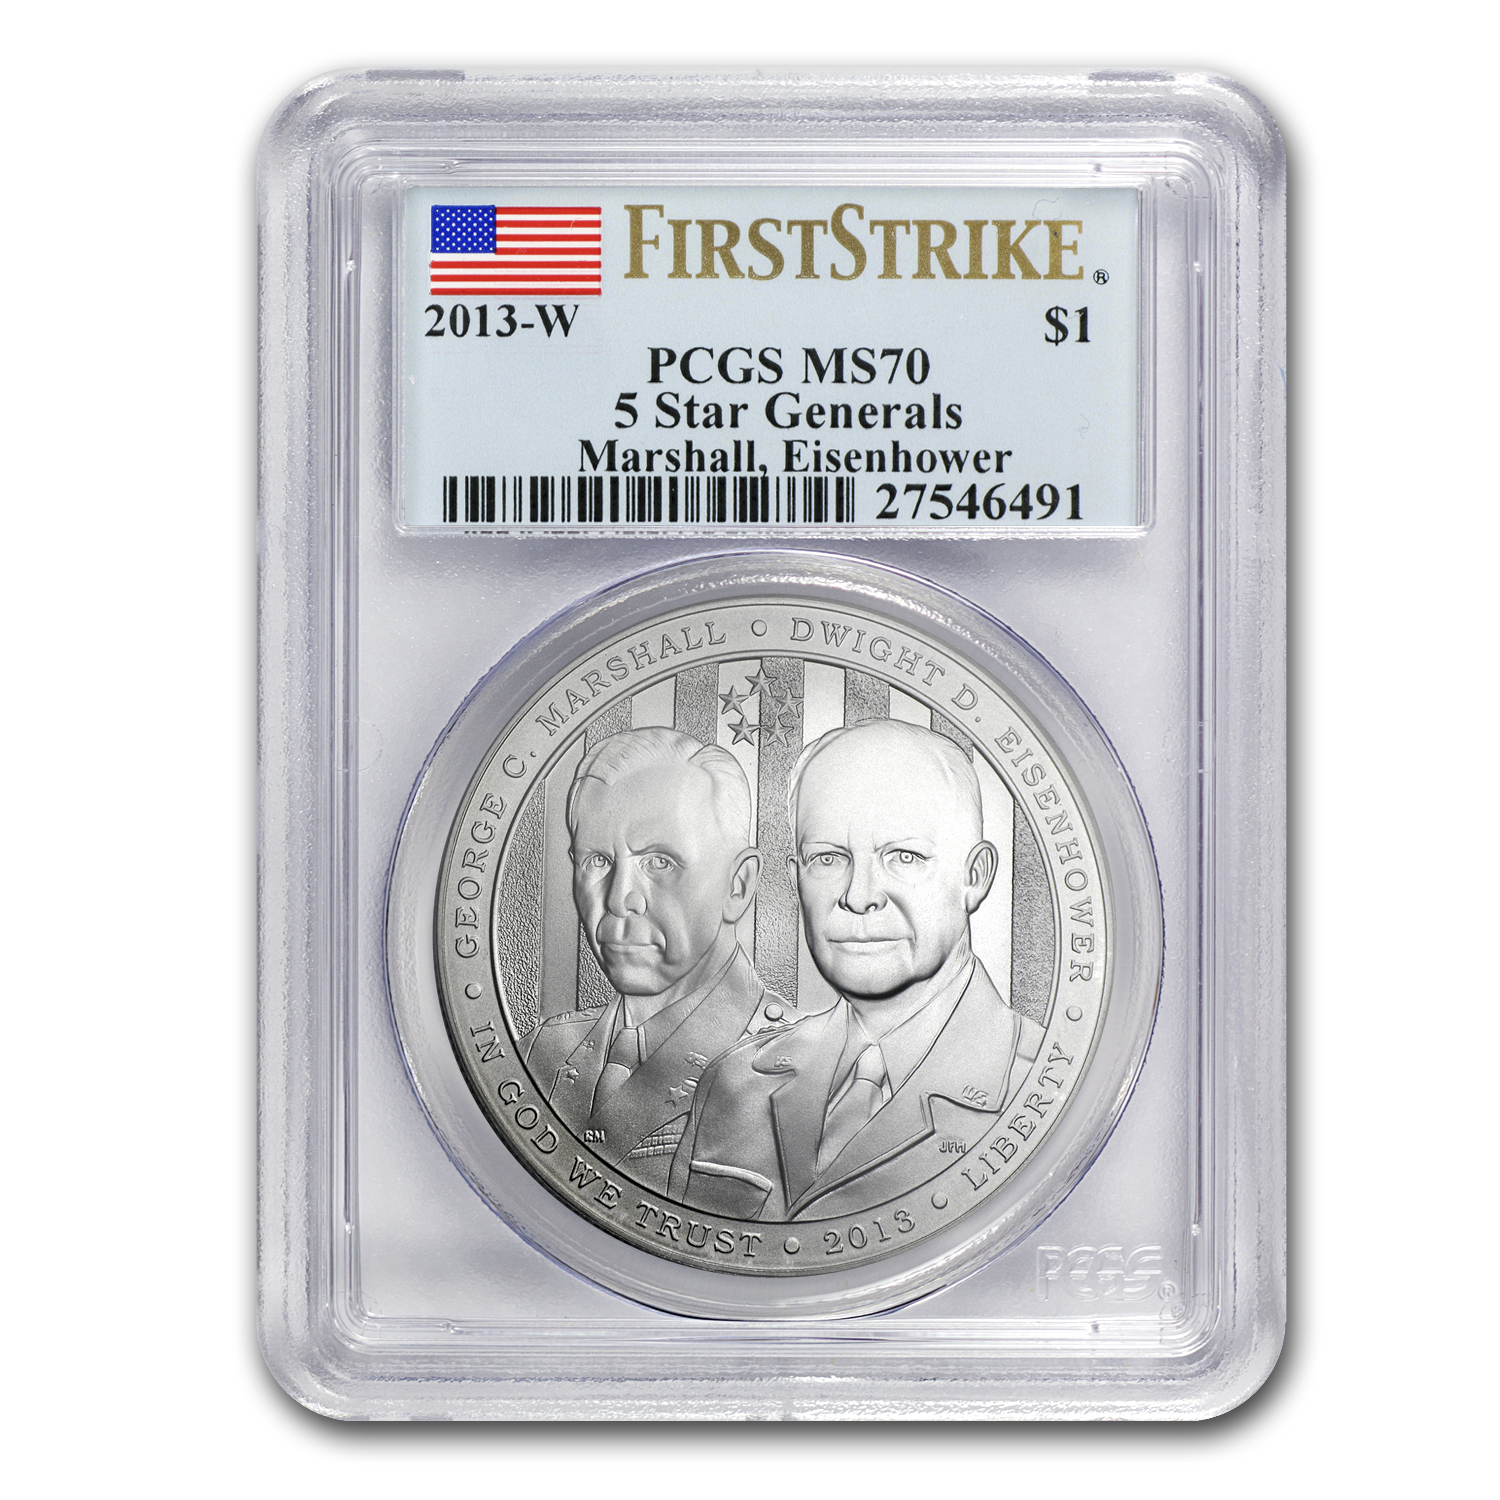 2013-W Five Star General $1 Silver Commemorative MS-70 PCGS (FS)